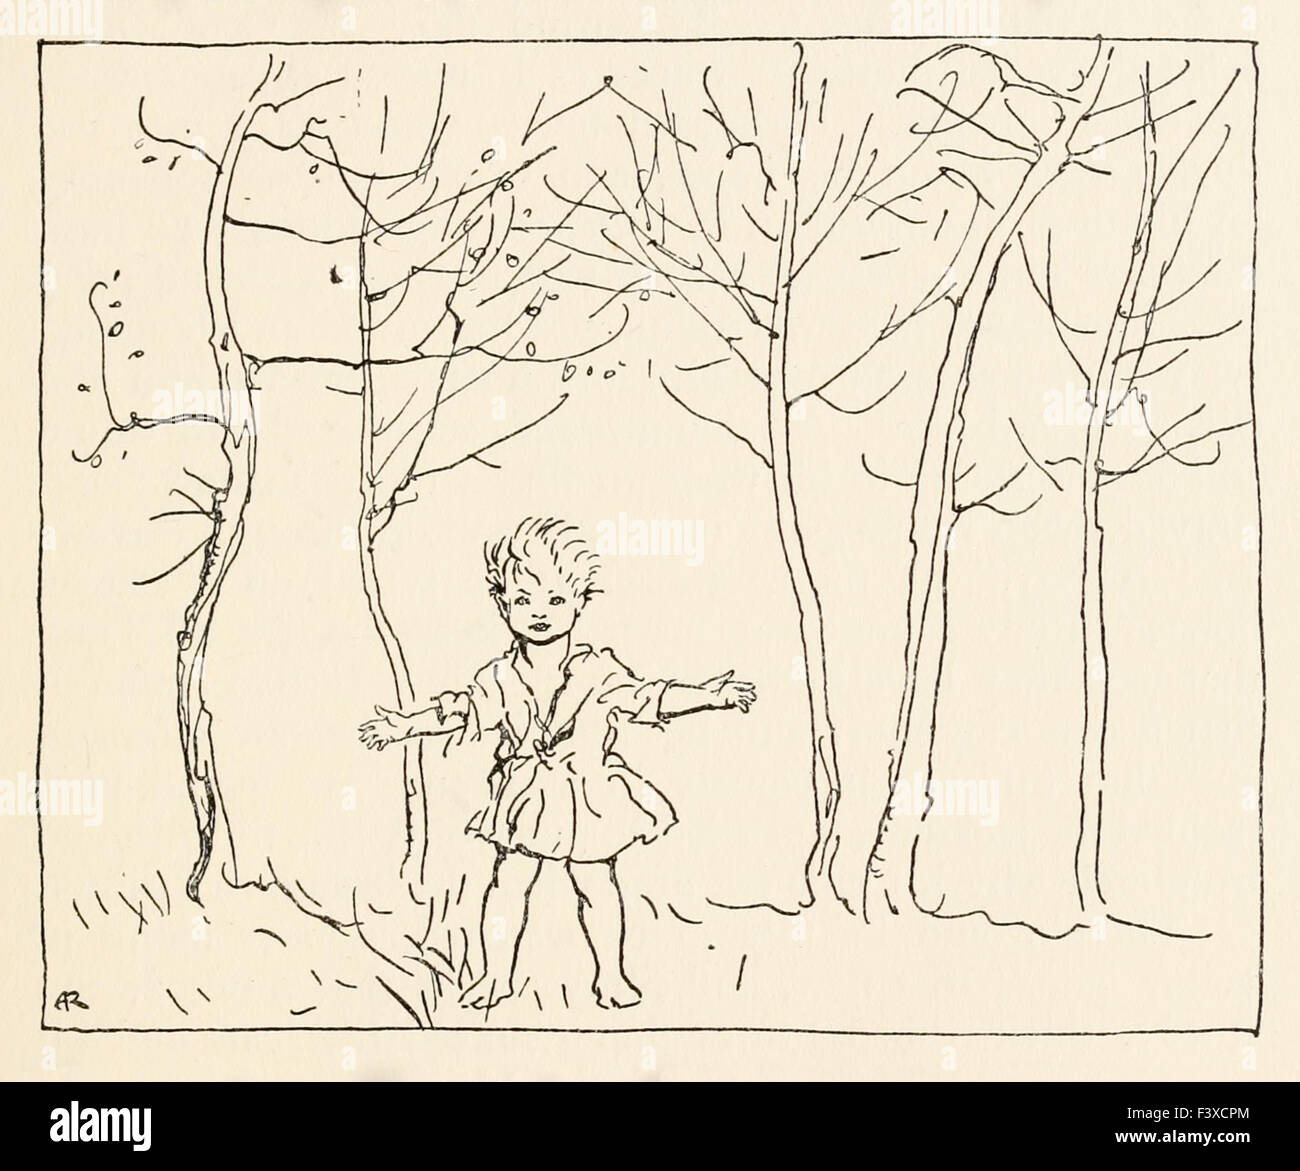 Fionn in the branchy wood from 'The Boyhood of Fionn' and 'Irish Fairy Tales', illustration by Arthur - Stock Image